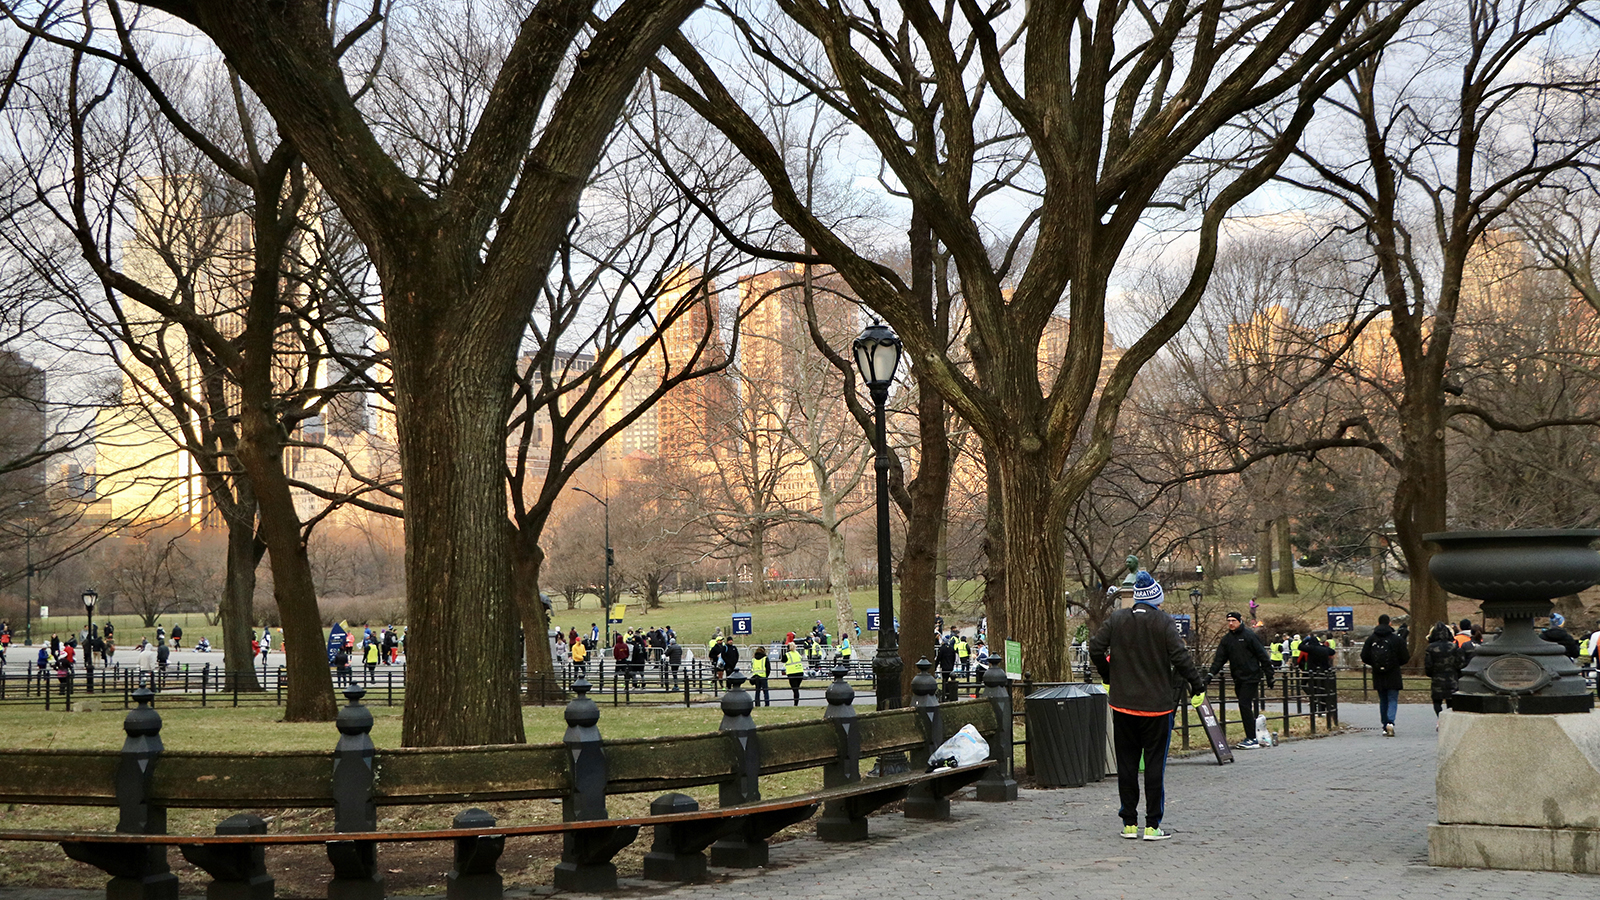 Central Park in the winter before a race.